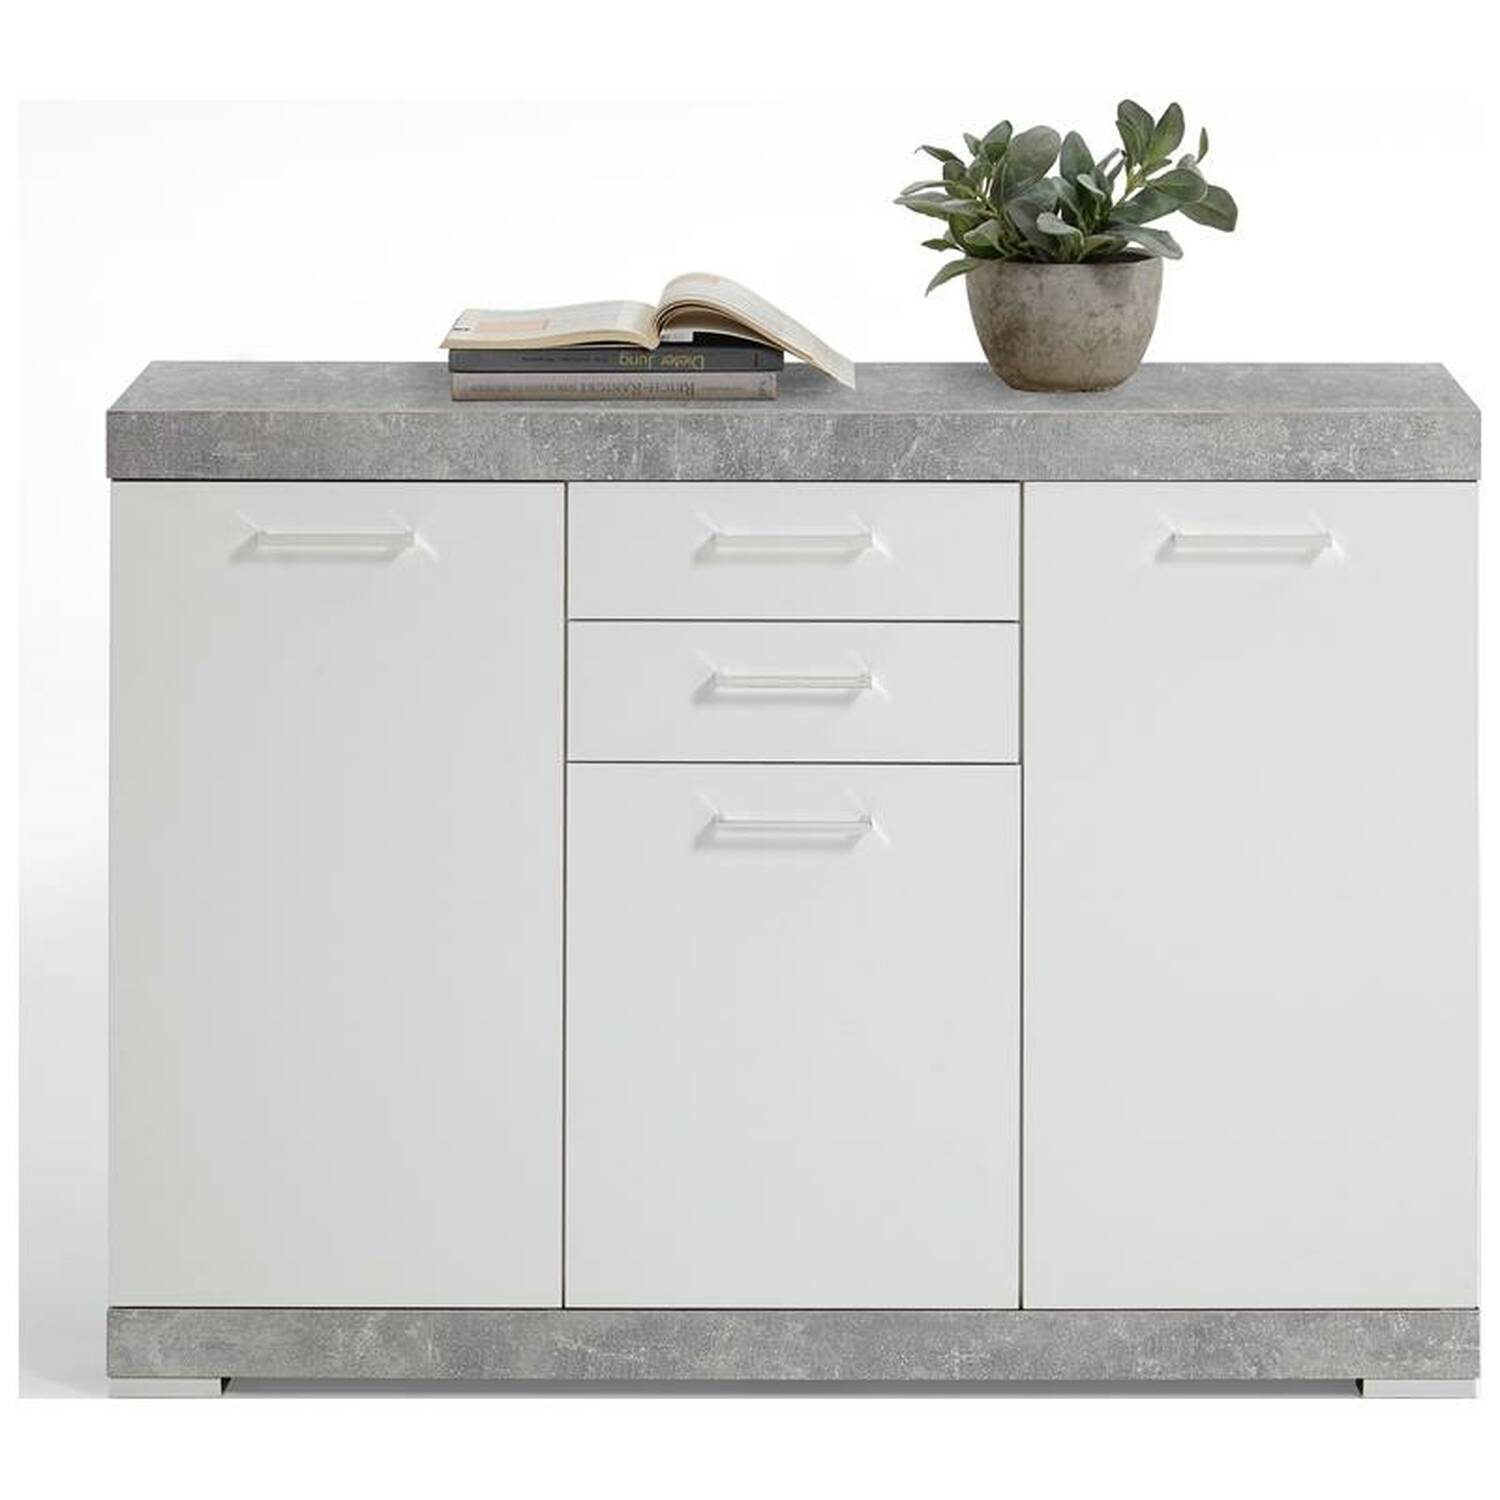 sideboard anrichte mit 3 t ren und 2 schubk sten in beton nb wei edelglanz york 10 b x h x t. Black Bedroom Furniture Sets. Home Design Ideas